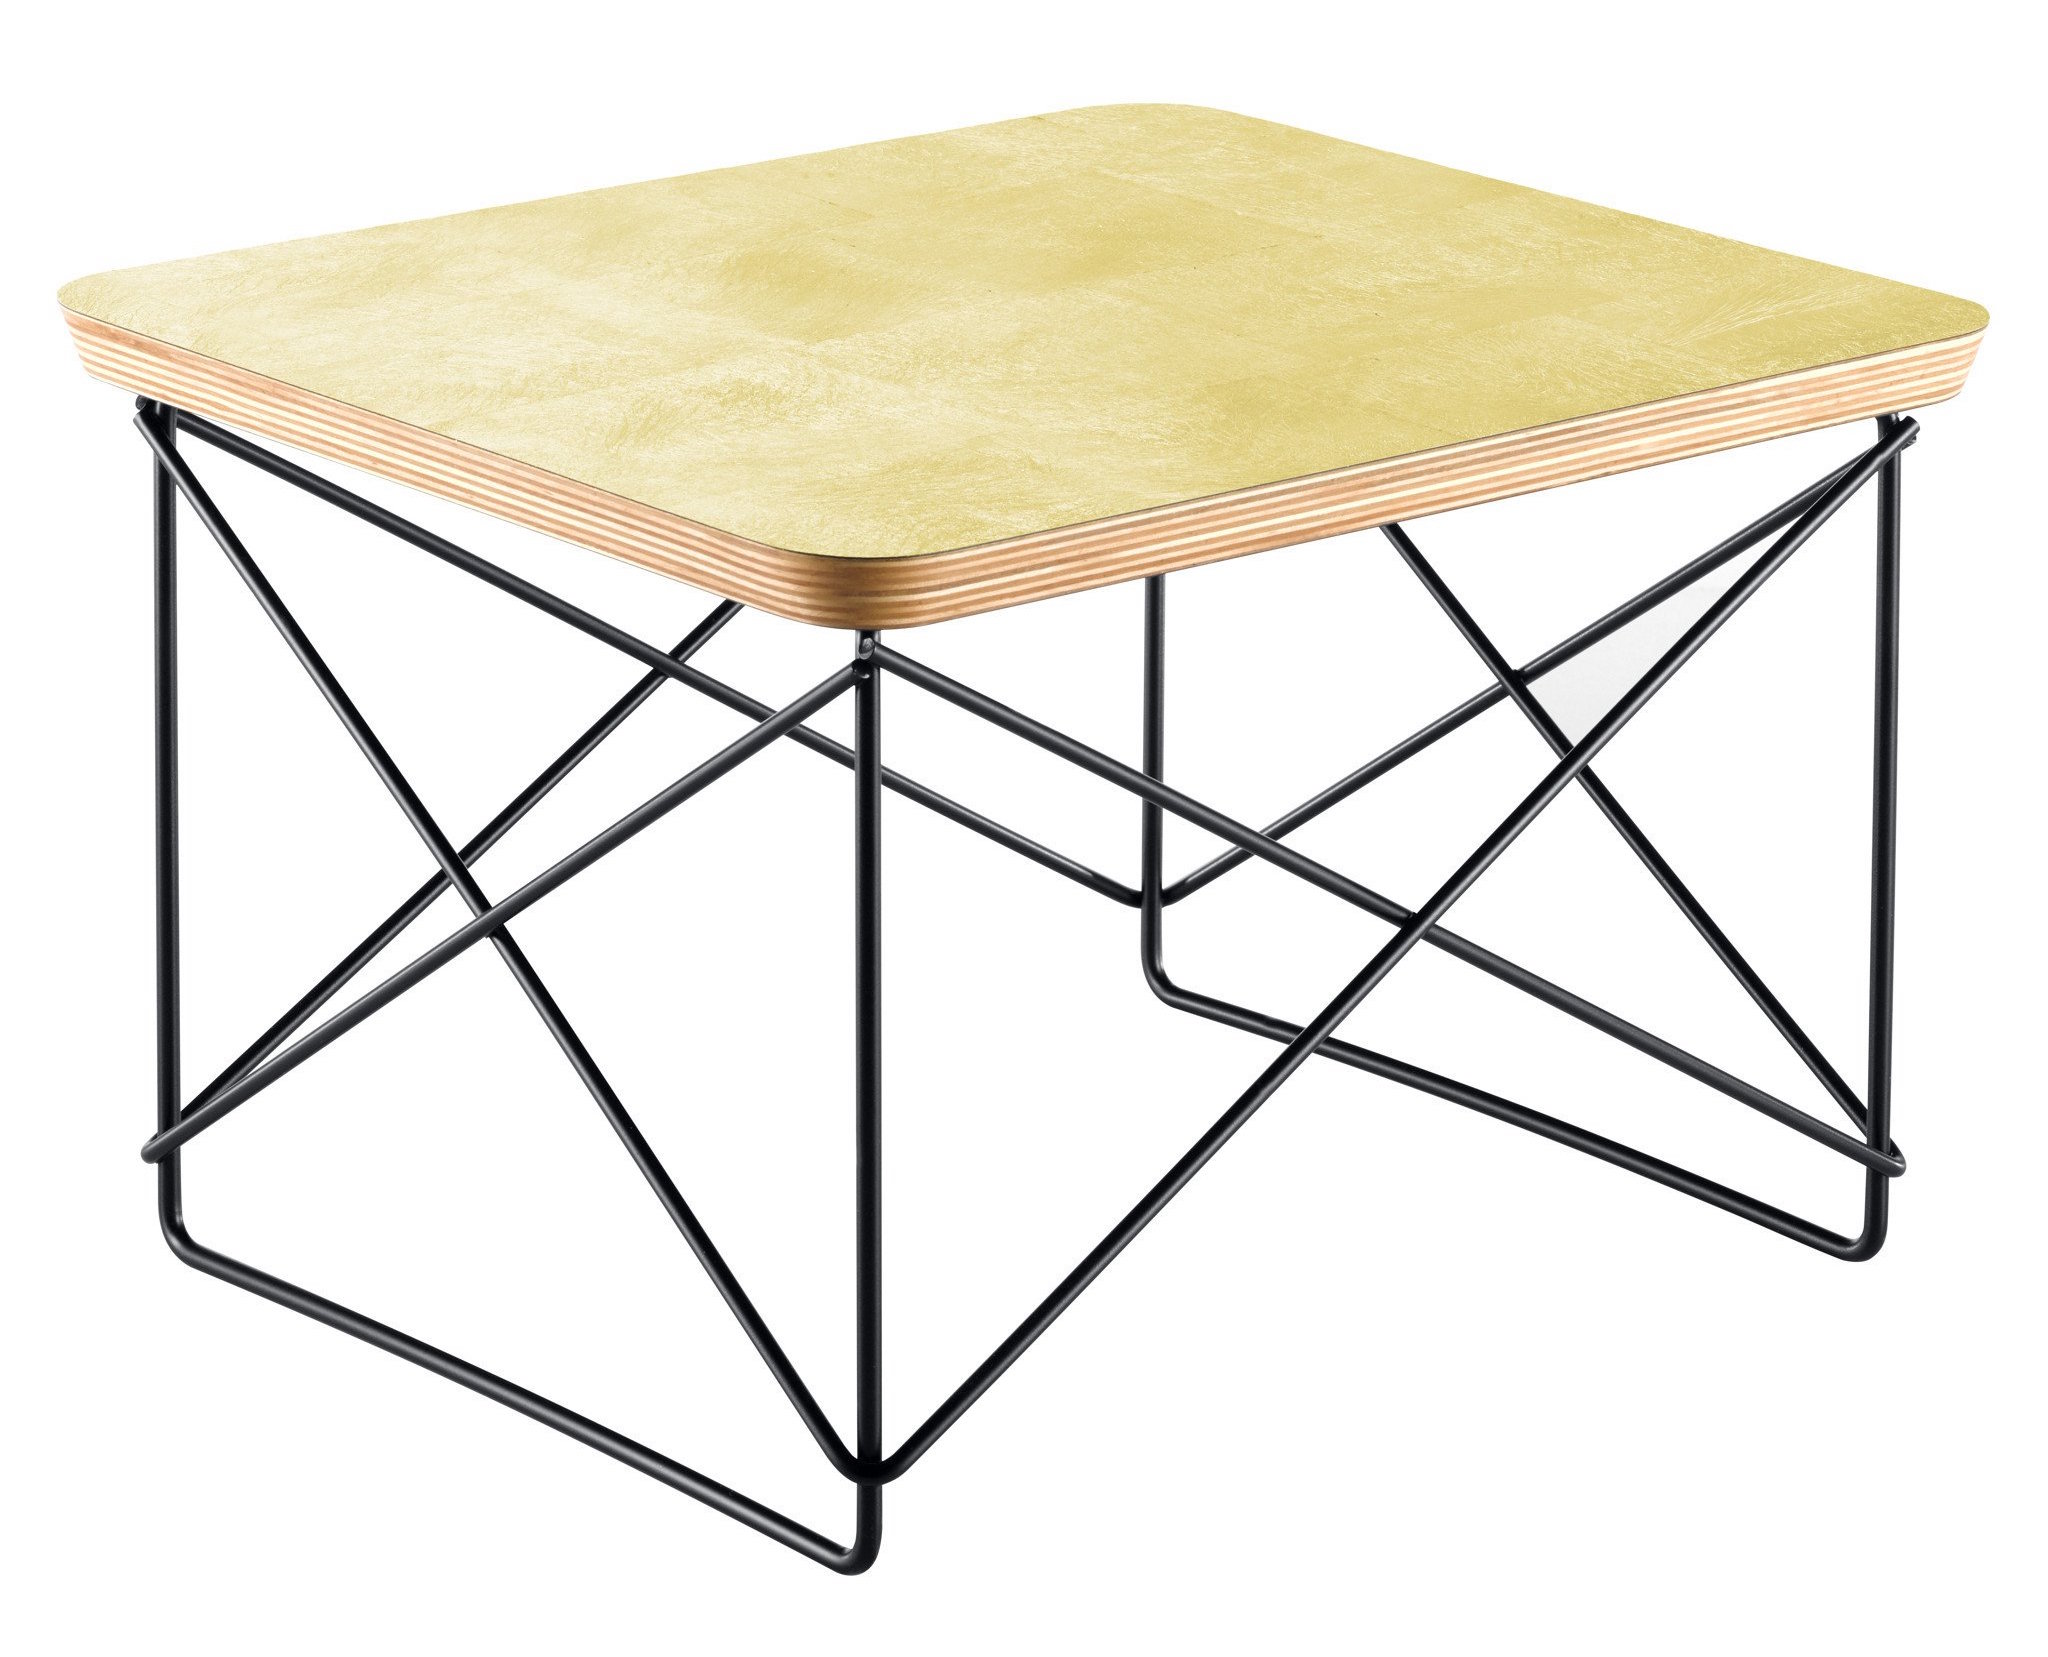 Vitra Occasional Table Ltr Design Charles And Ray Eames